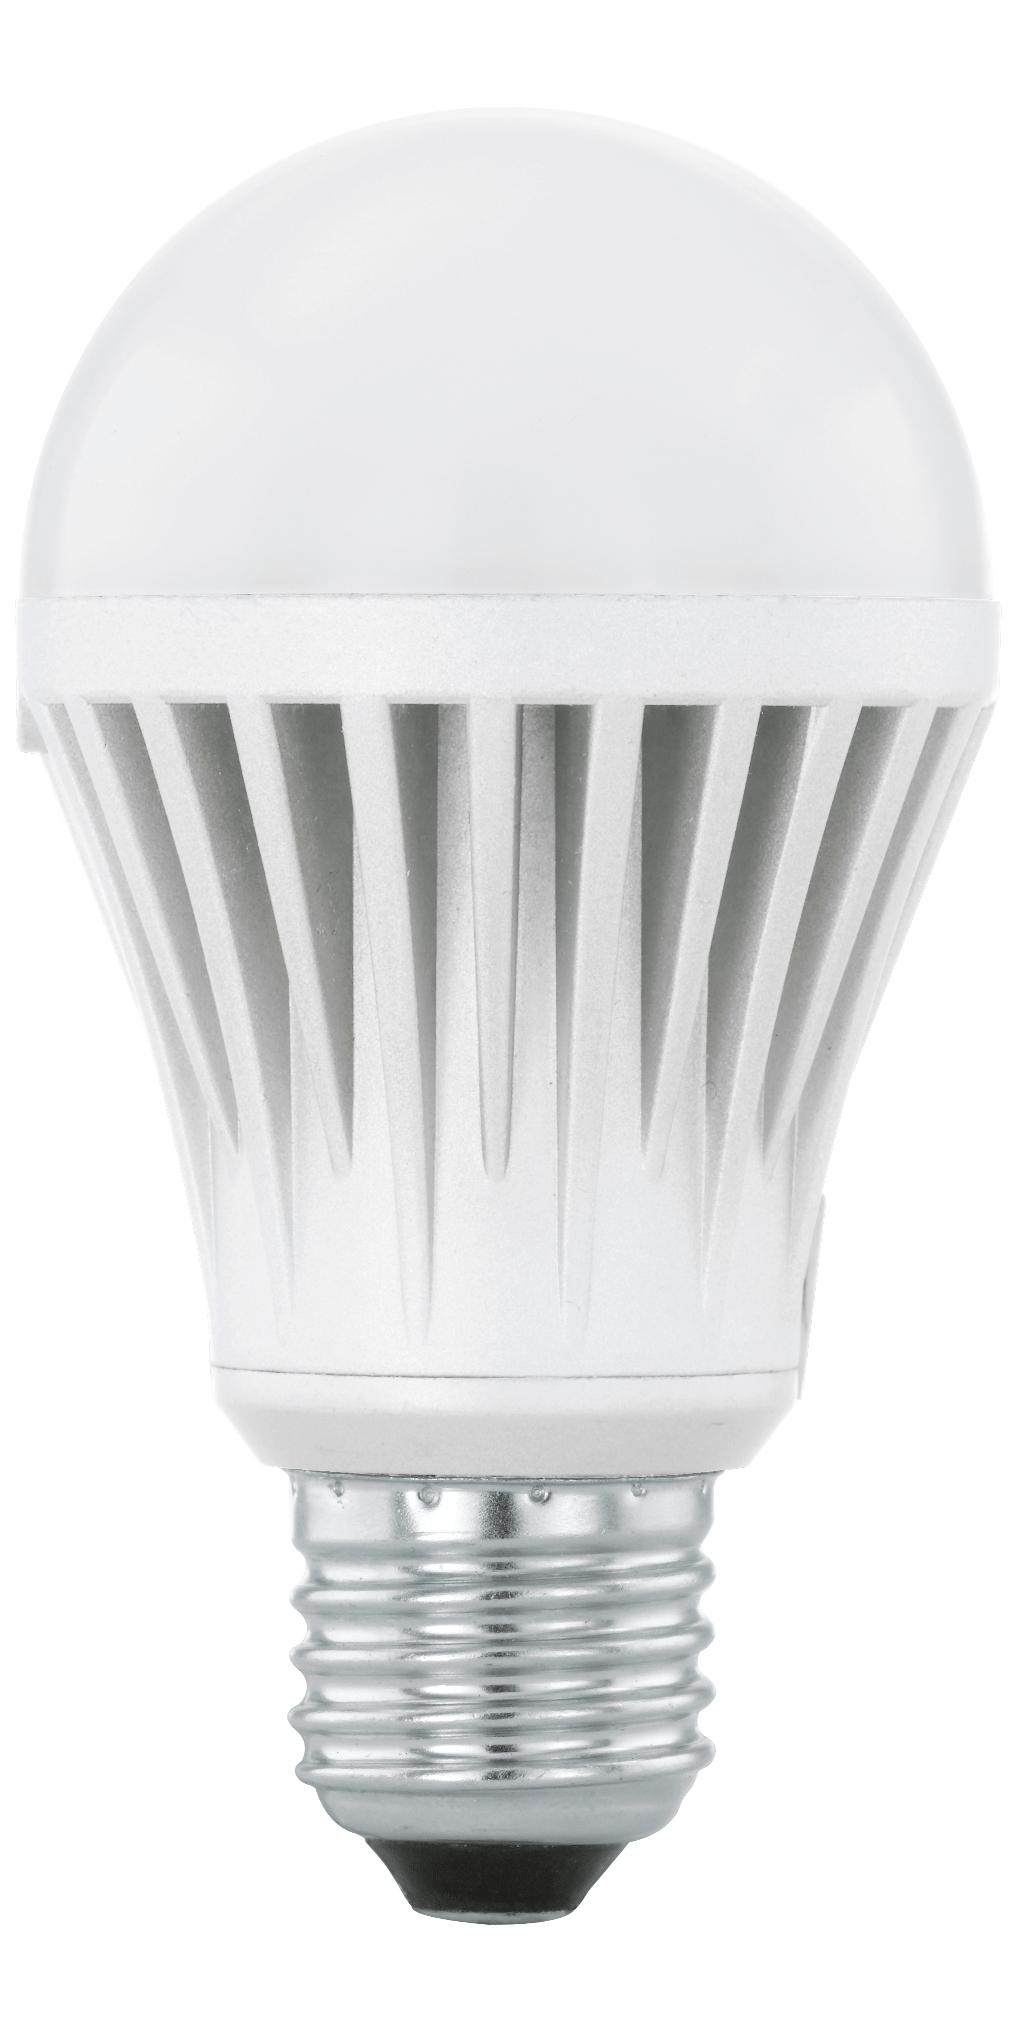 LED sijalica 12W - 11465